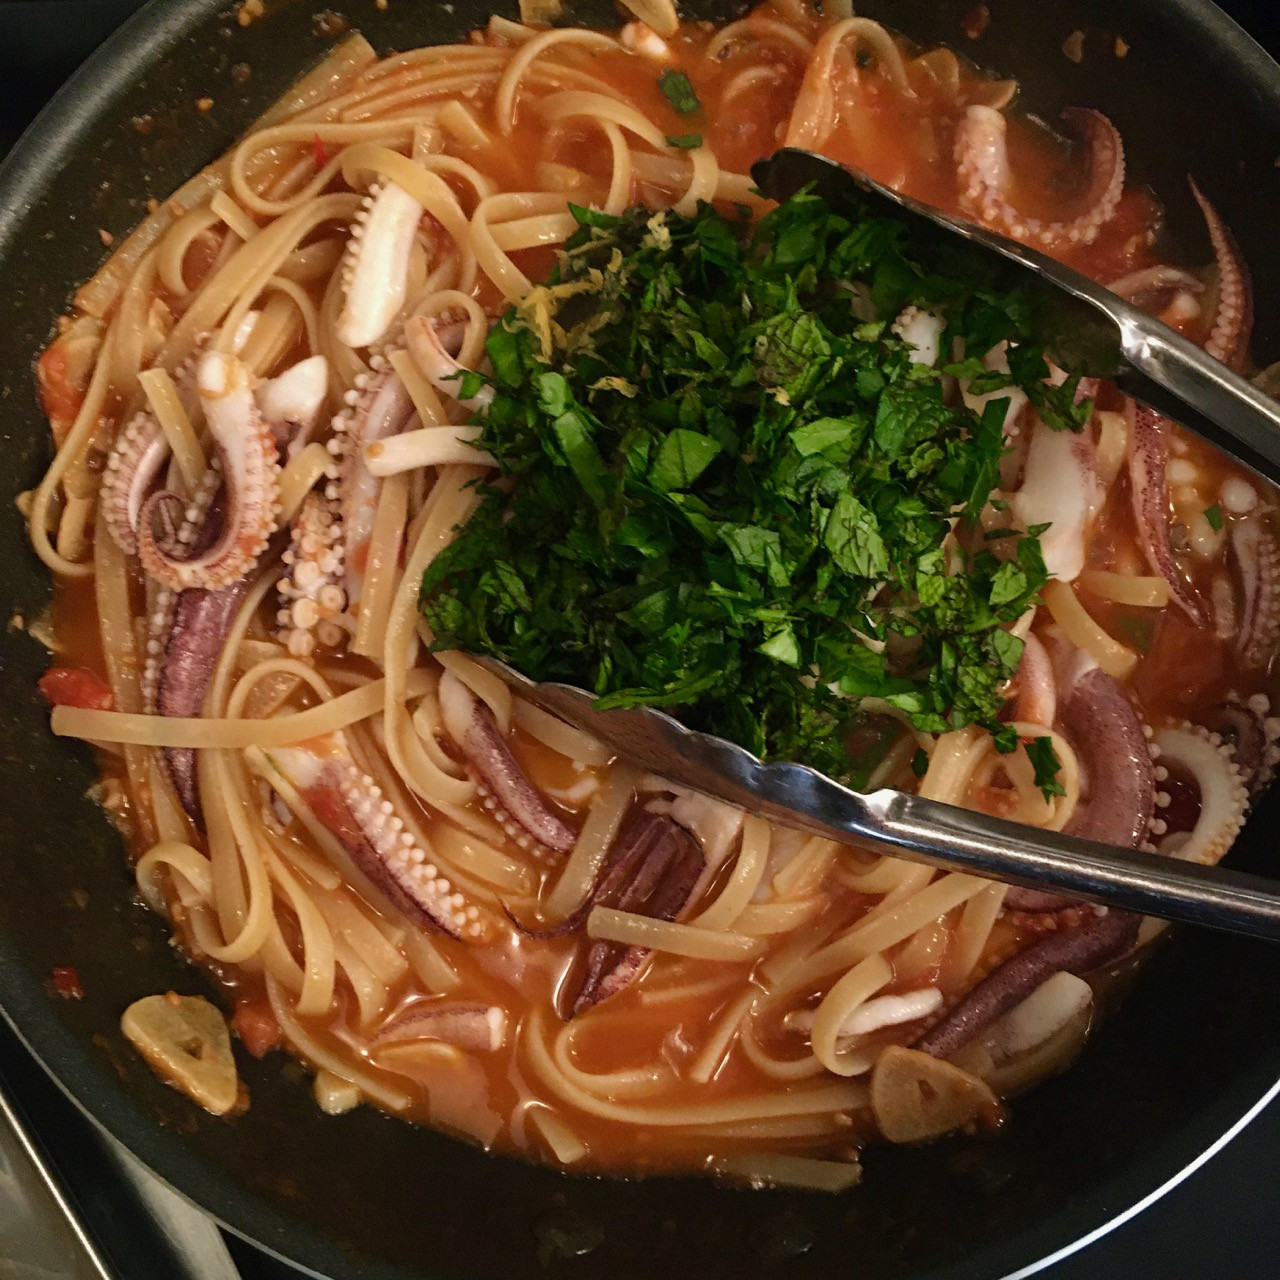 Overhead shot of a pan of linguini in sauce with squid tentacles on top, being topped with chopped herbs.